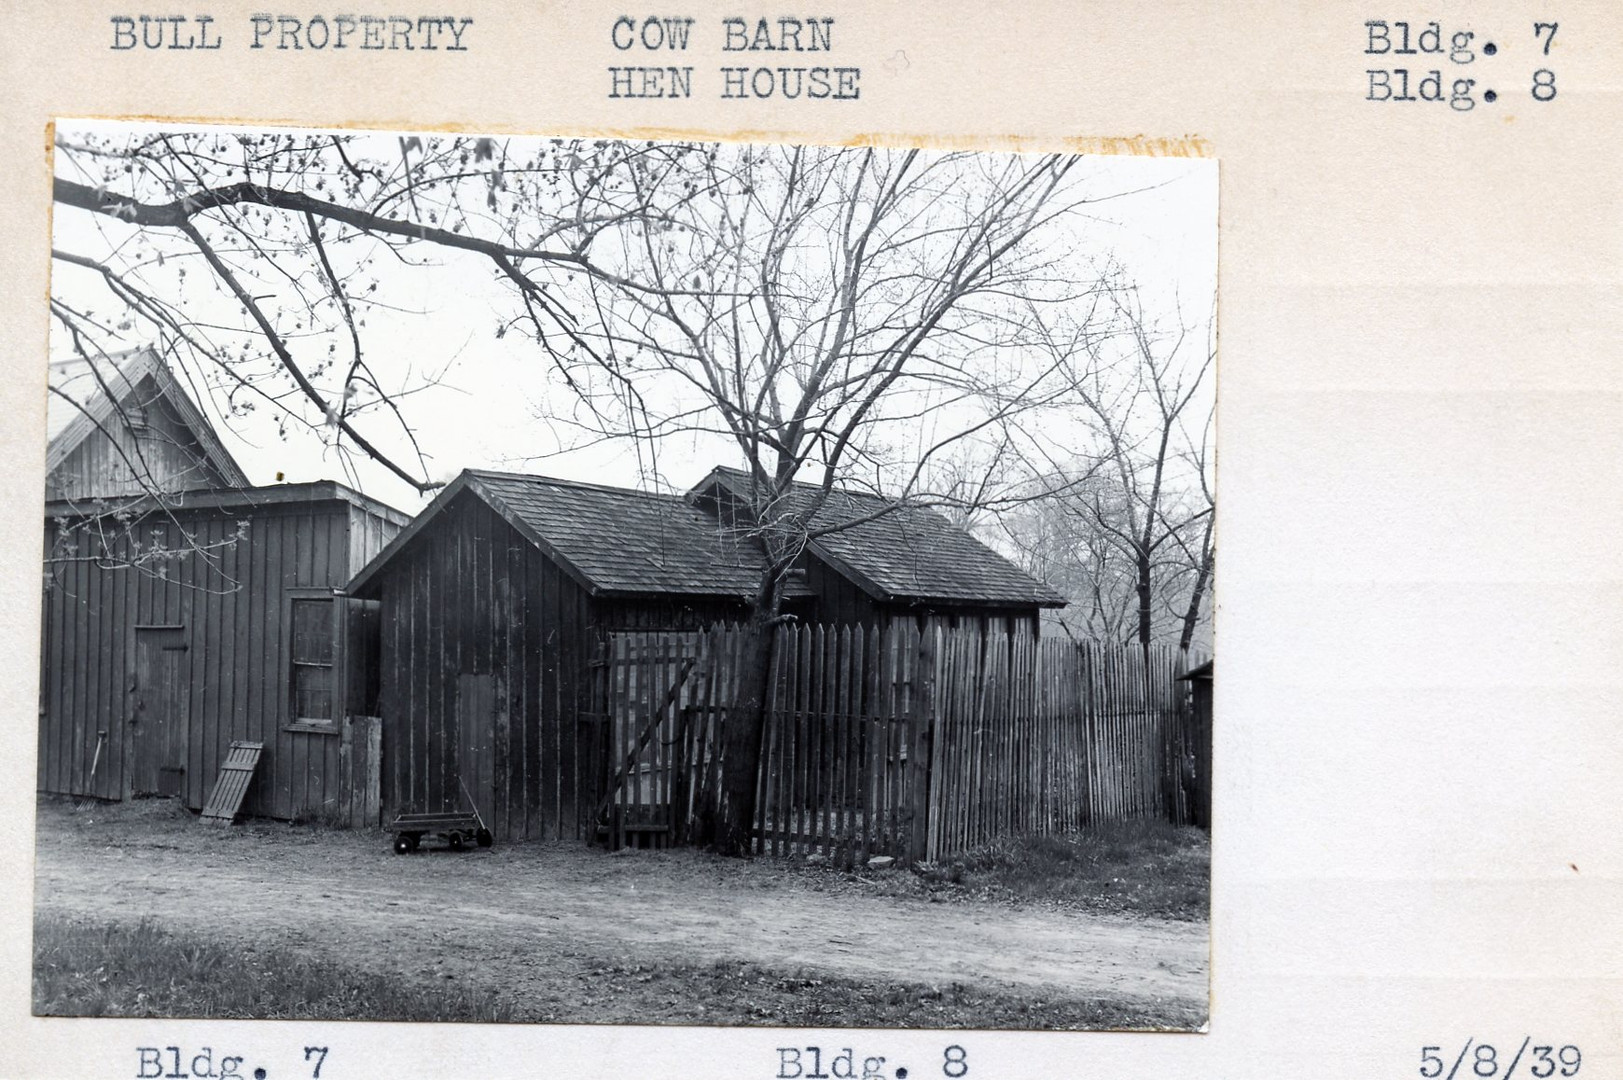 Bull Property, Cow Barn Bldg #7, Hen House, Bldg #8, 5/8/39